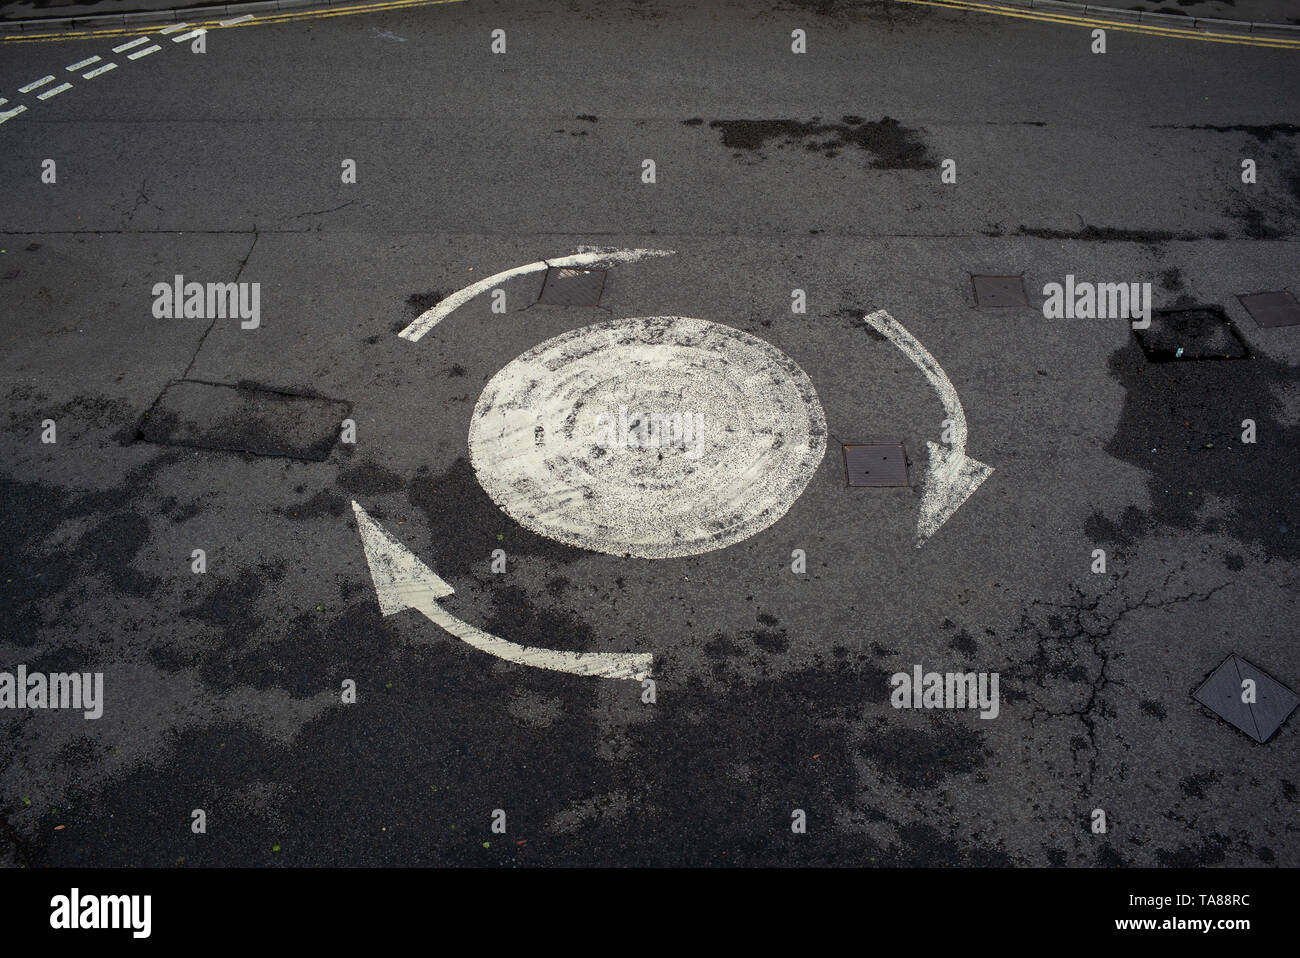 An aerial view of a painted road arrowed roundabout with no cars on could be used for analogy or concept image of being confused or lost etc. Stock Photo